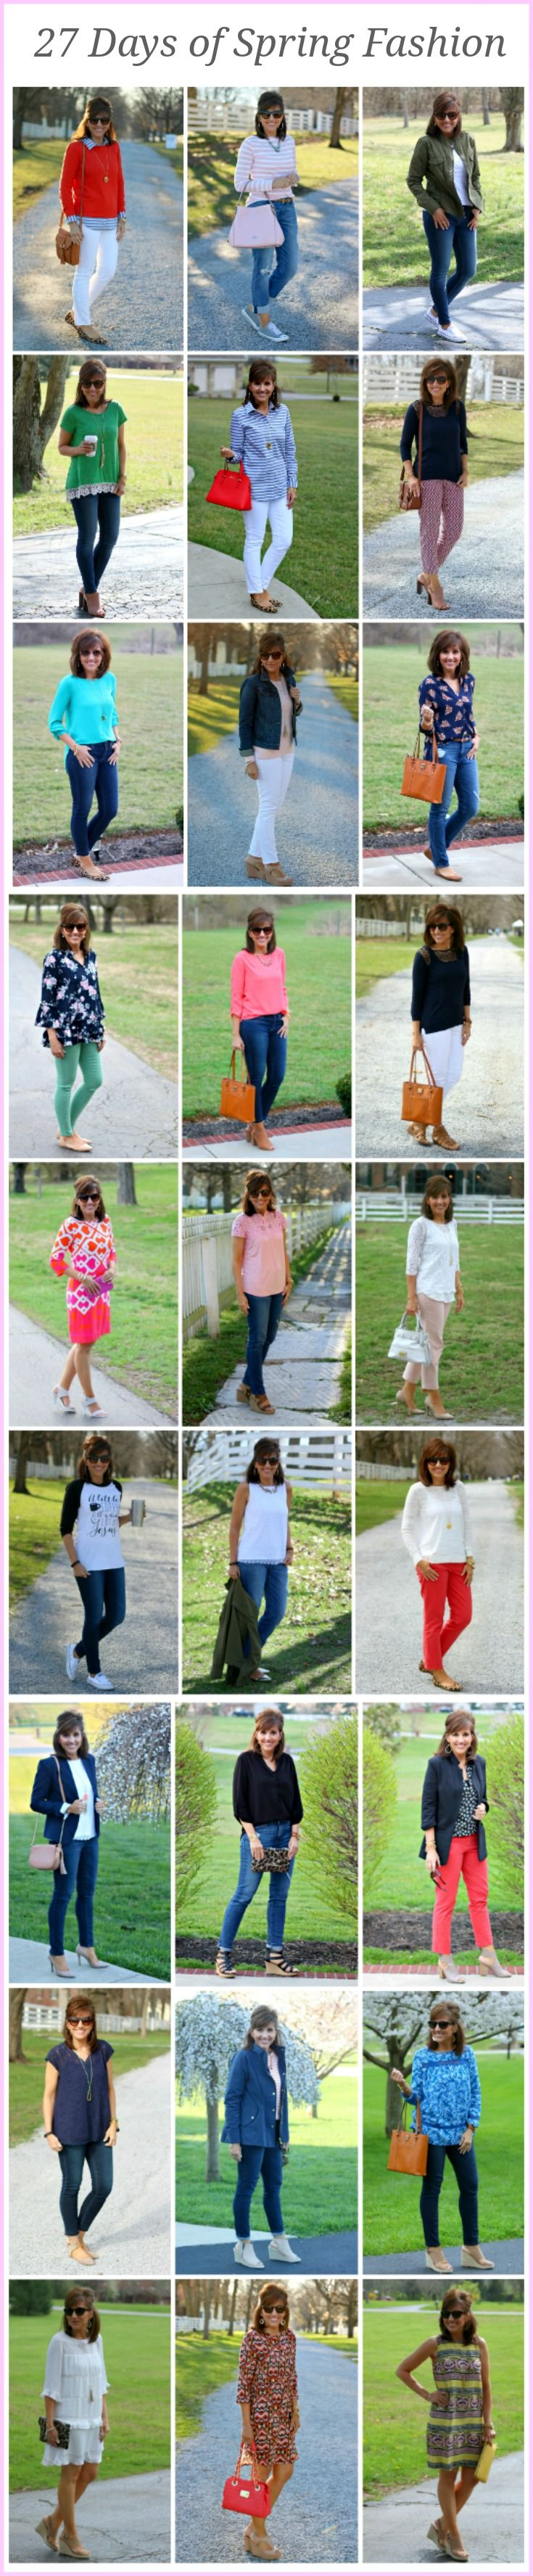 27 Days of Spring Fashion 2016 Recap - Grace & Beauty